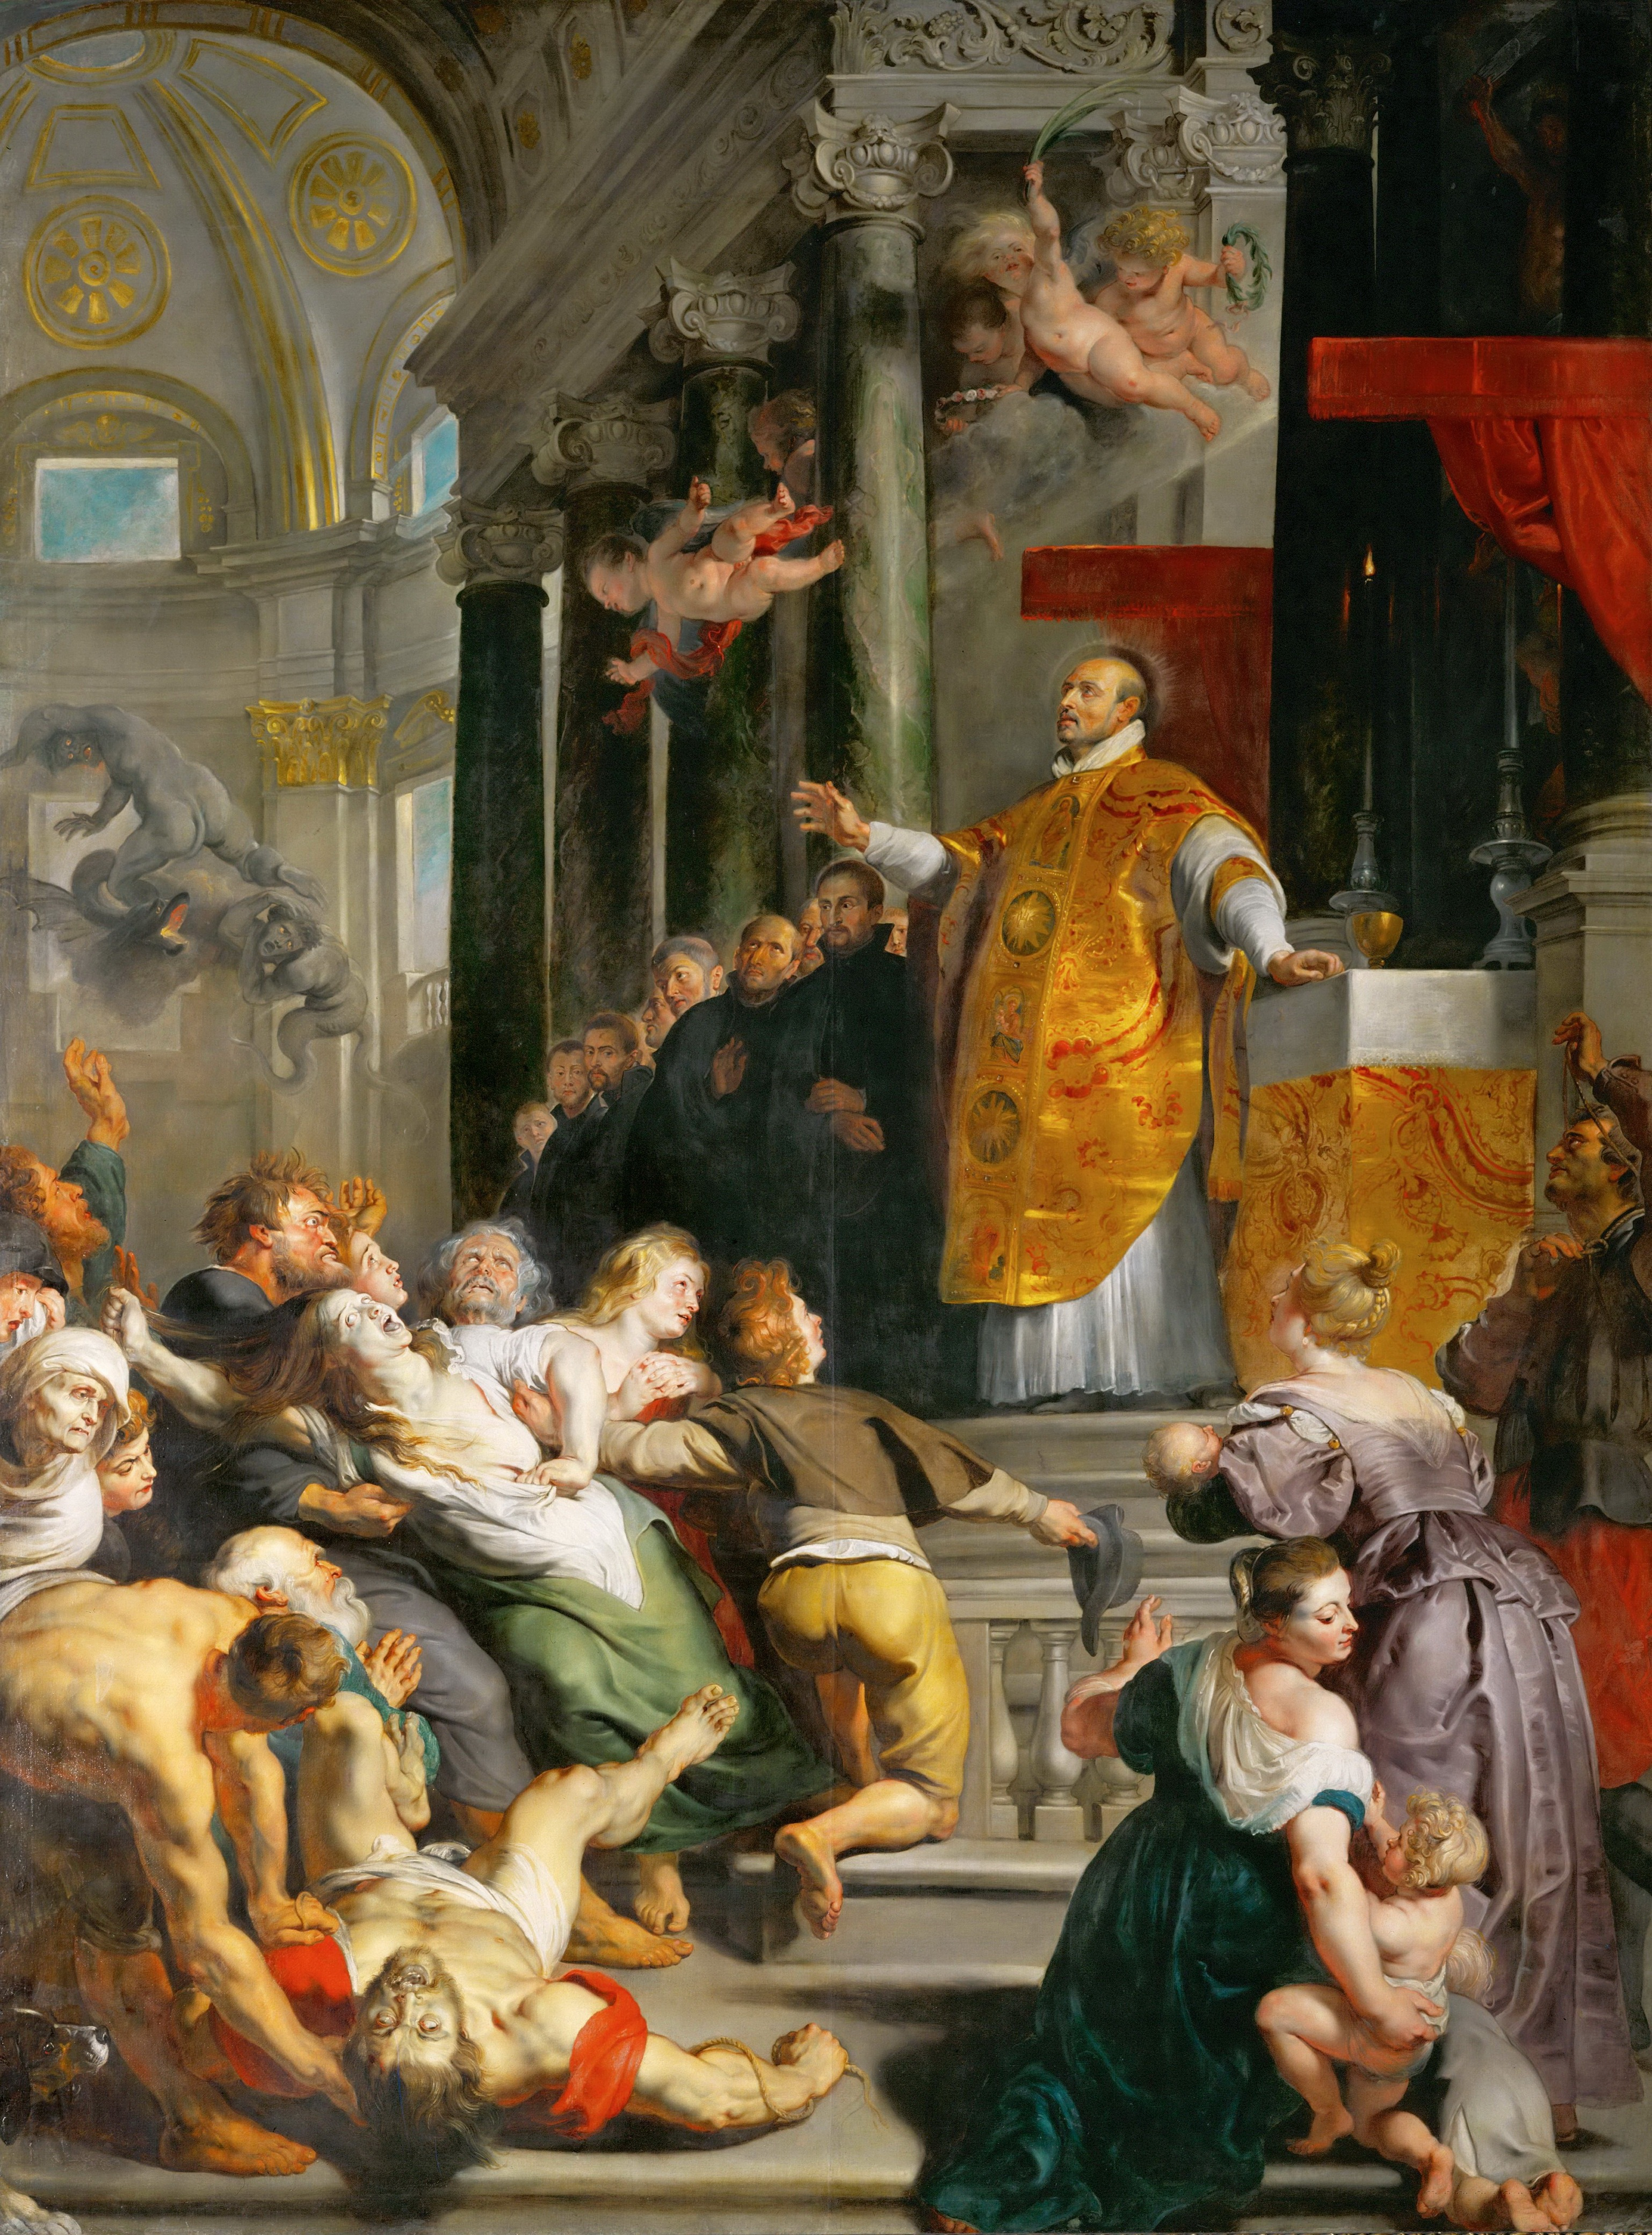 https://upload.wikimedia.org/wikipedia/commons/f/fa/Peter_Paul_Rubens33.jpg